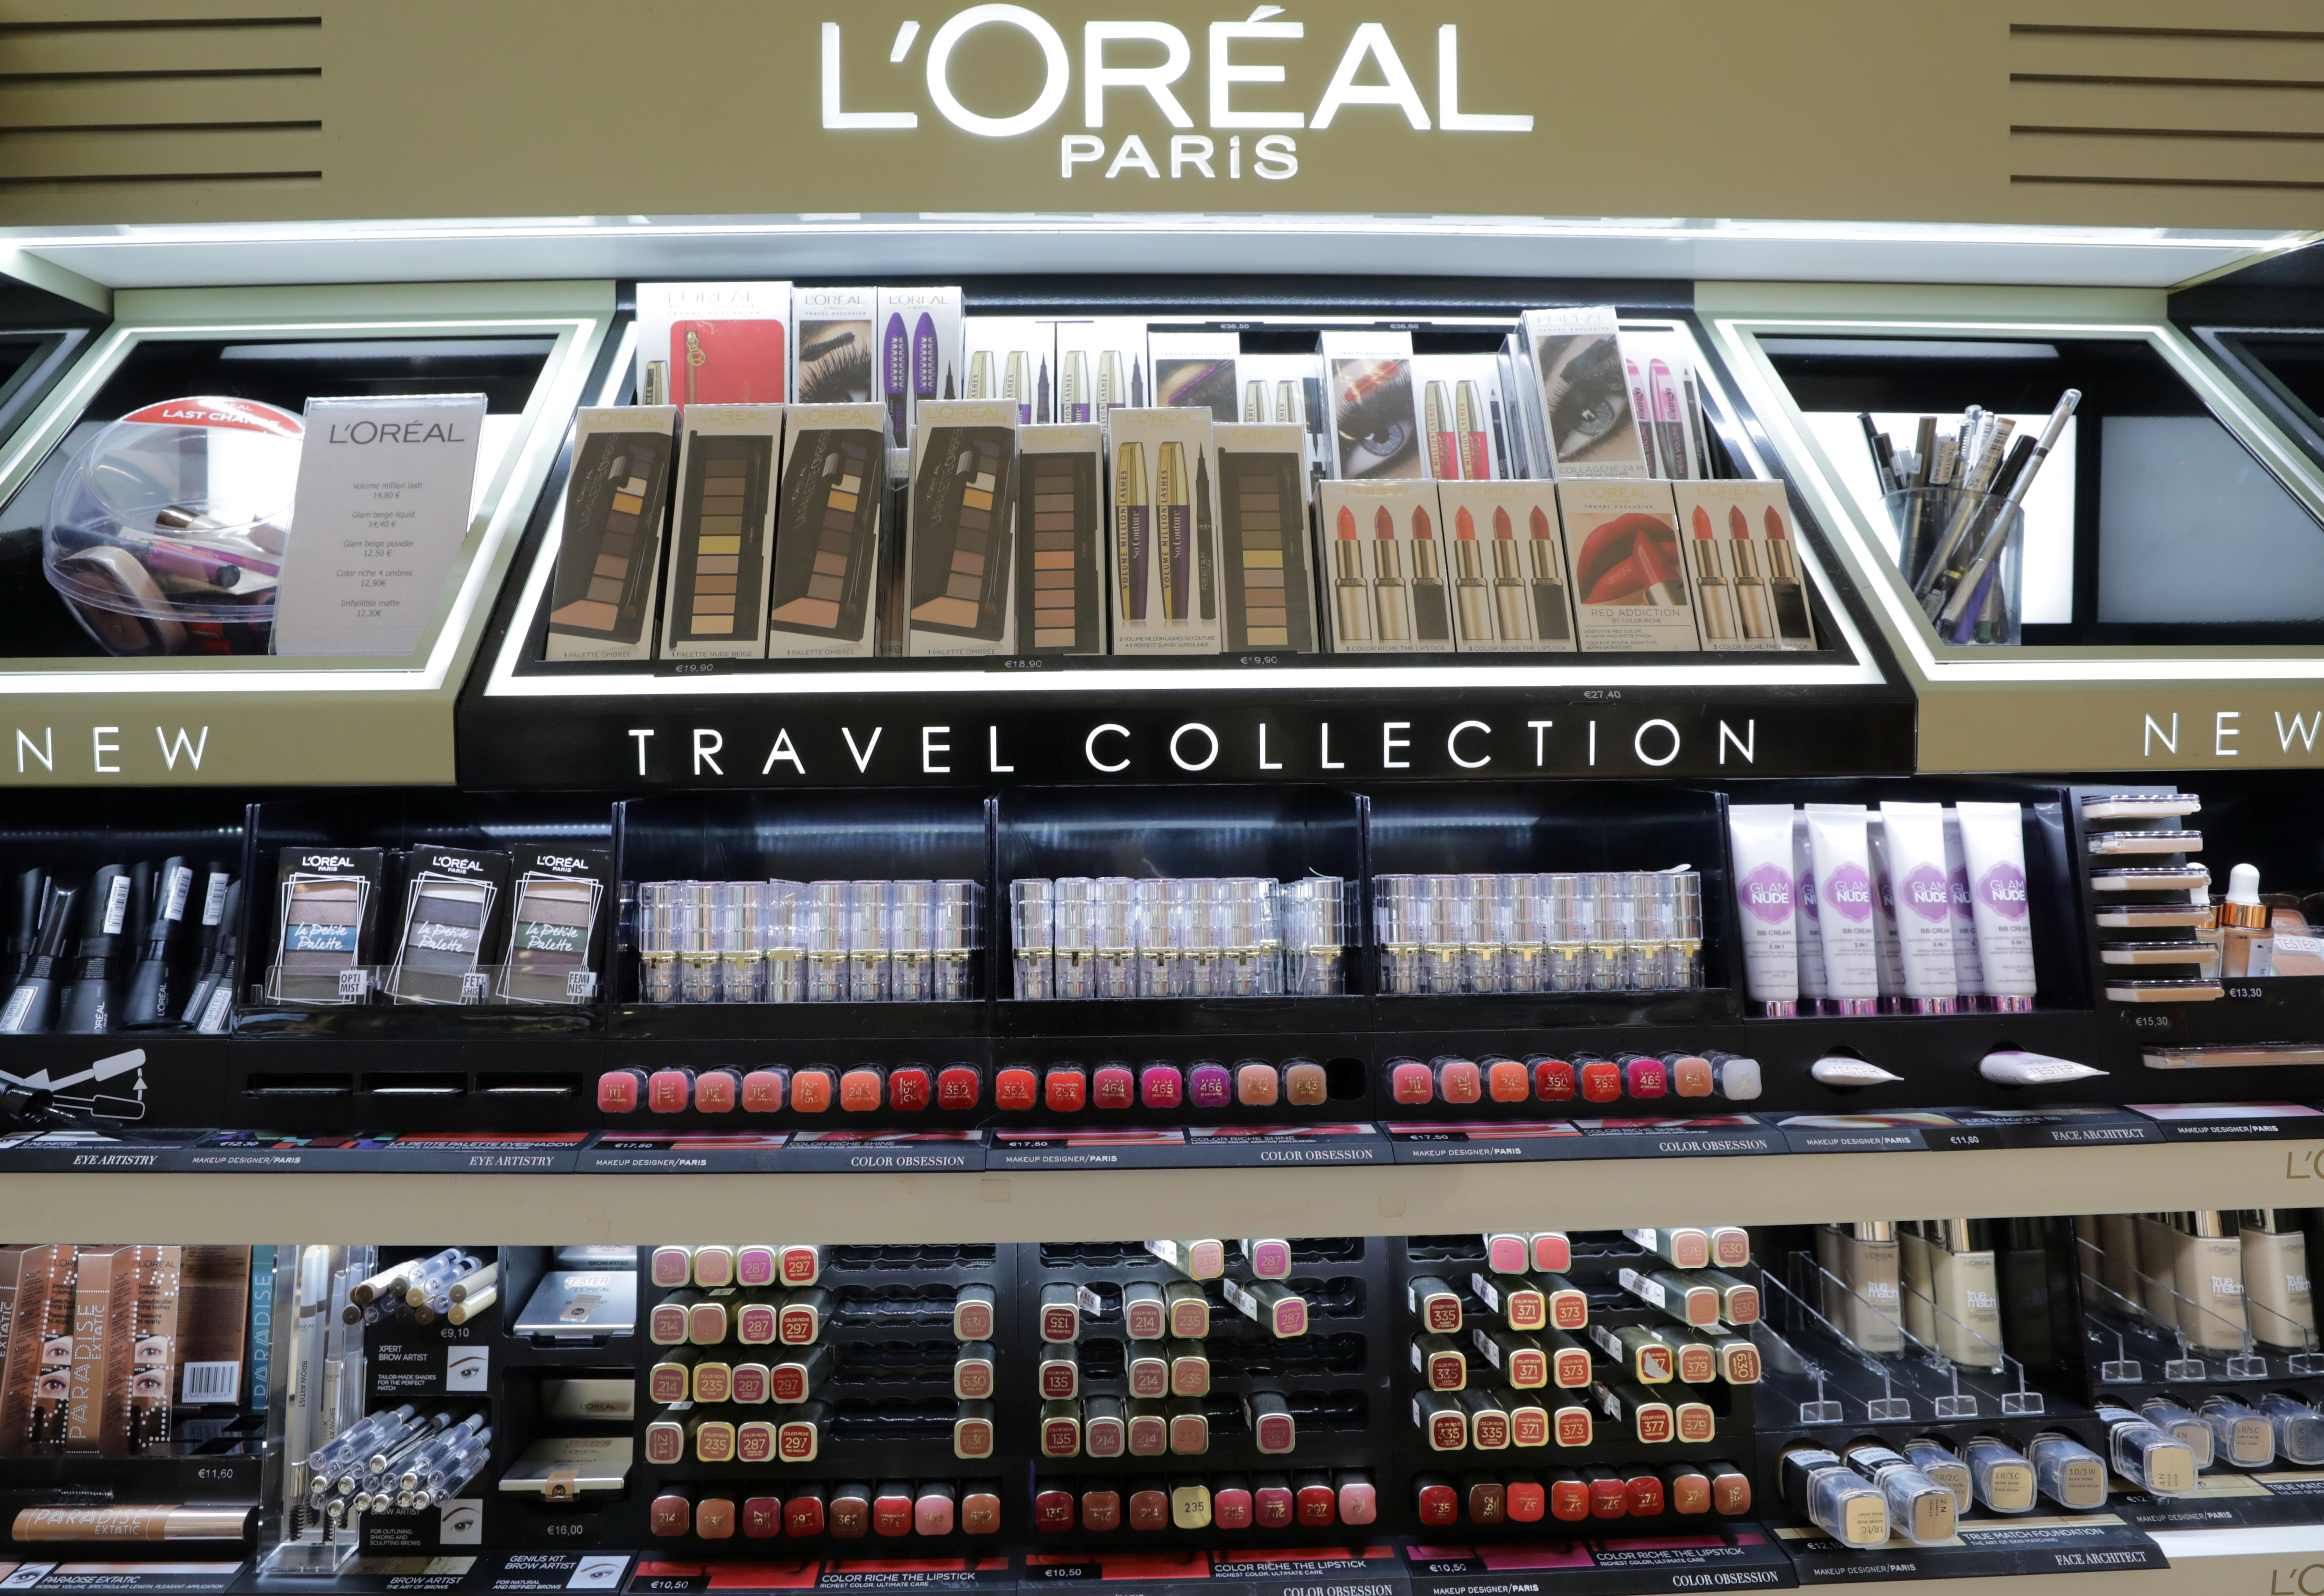 A cosmetic display of French cosmetics group L'Oreal is seen at a duty free shop at the Nice International Airport, in Nice, France, October 10, 2018. REUTERS/Eric Gaillard